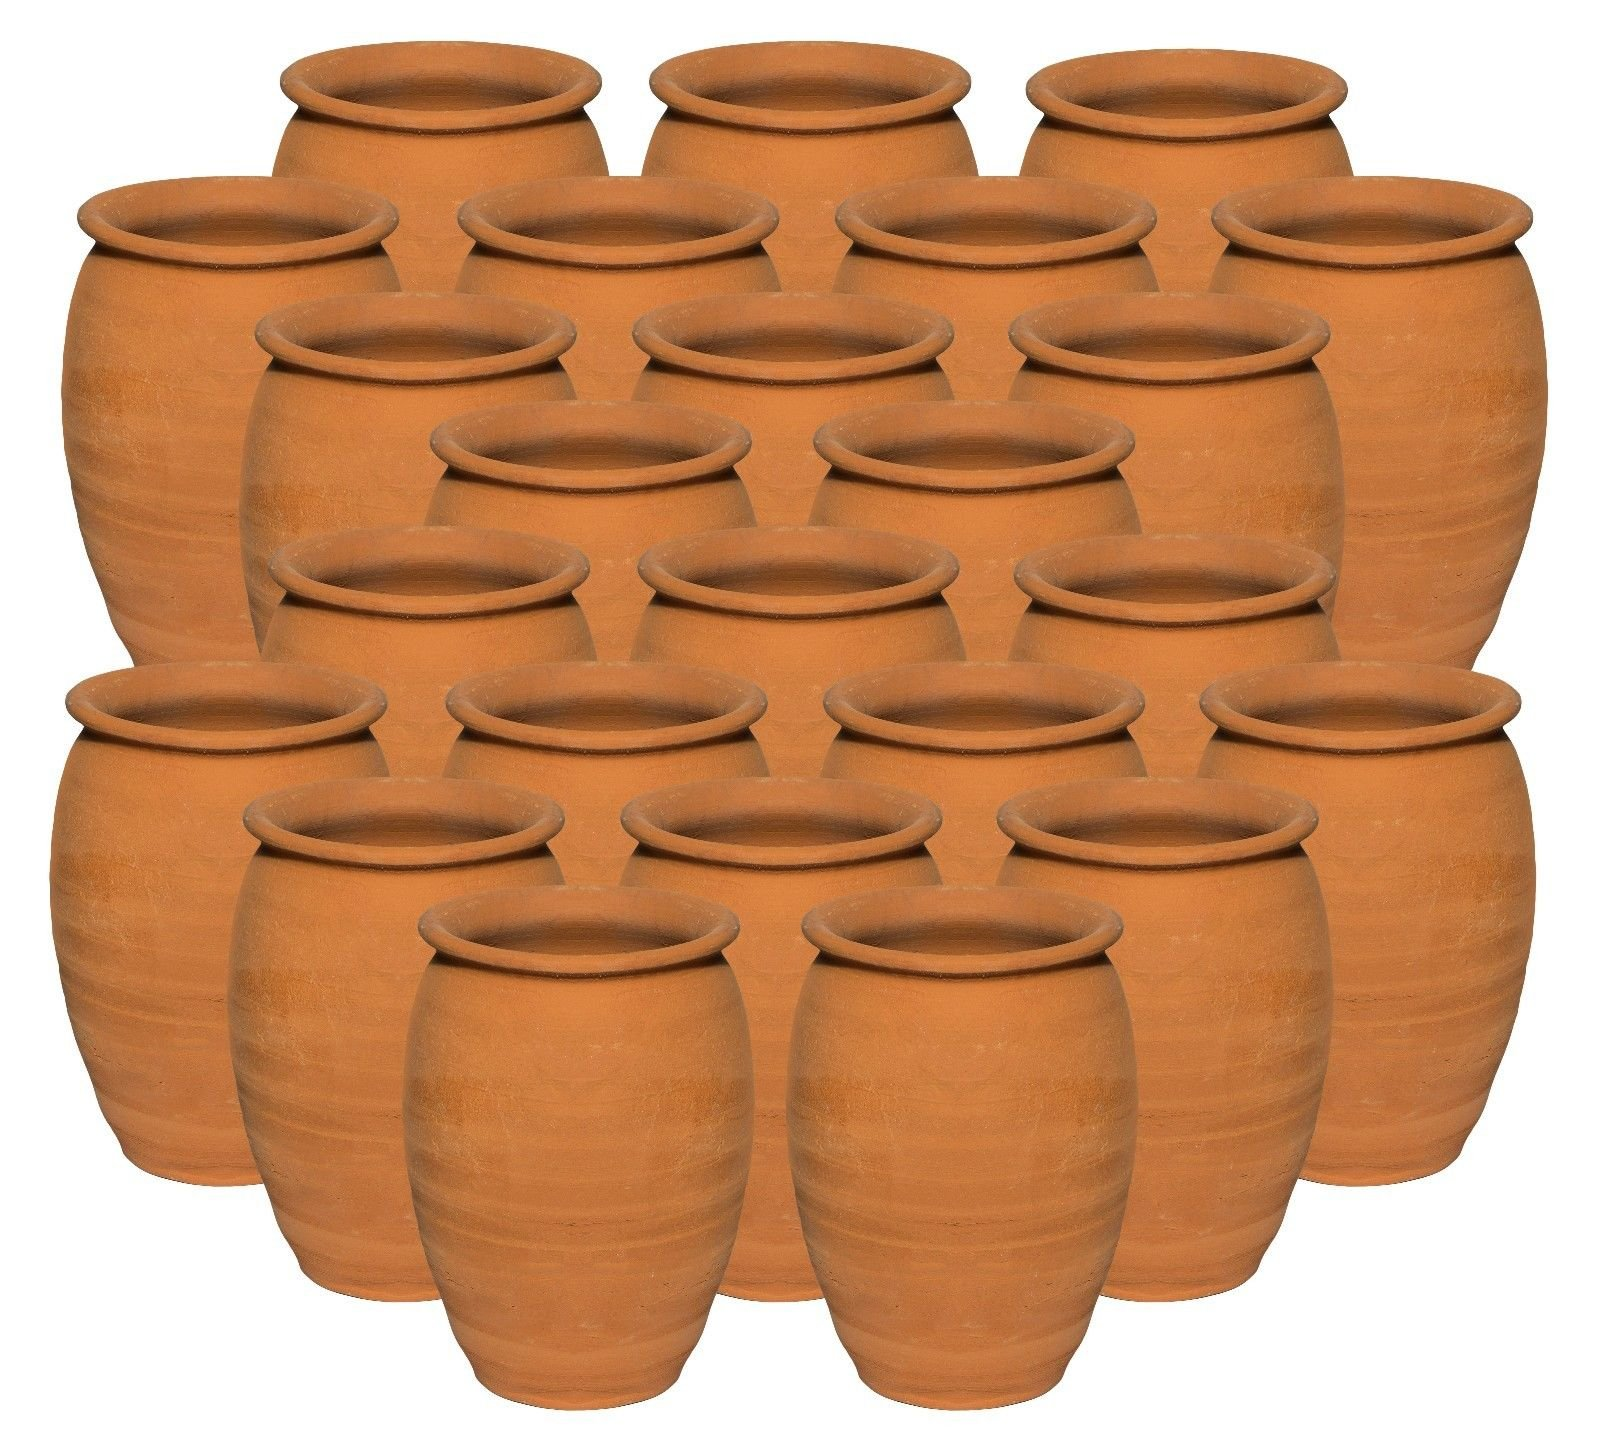 Jarritos de Barro, 24 Pack - Mexican Clay Ethnic Containers (12 oz.) – Cantaritos de Barro Handmade Drinkware for Hot or Cold Beverages Mug Cups